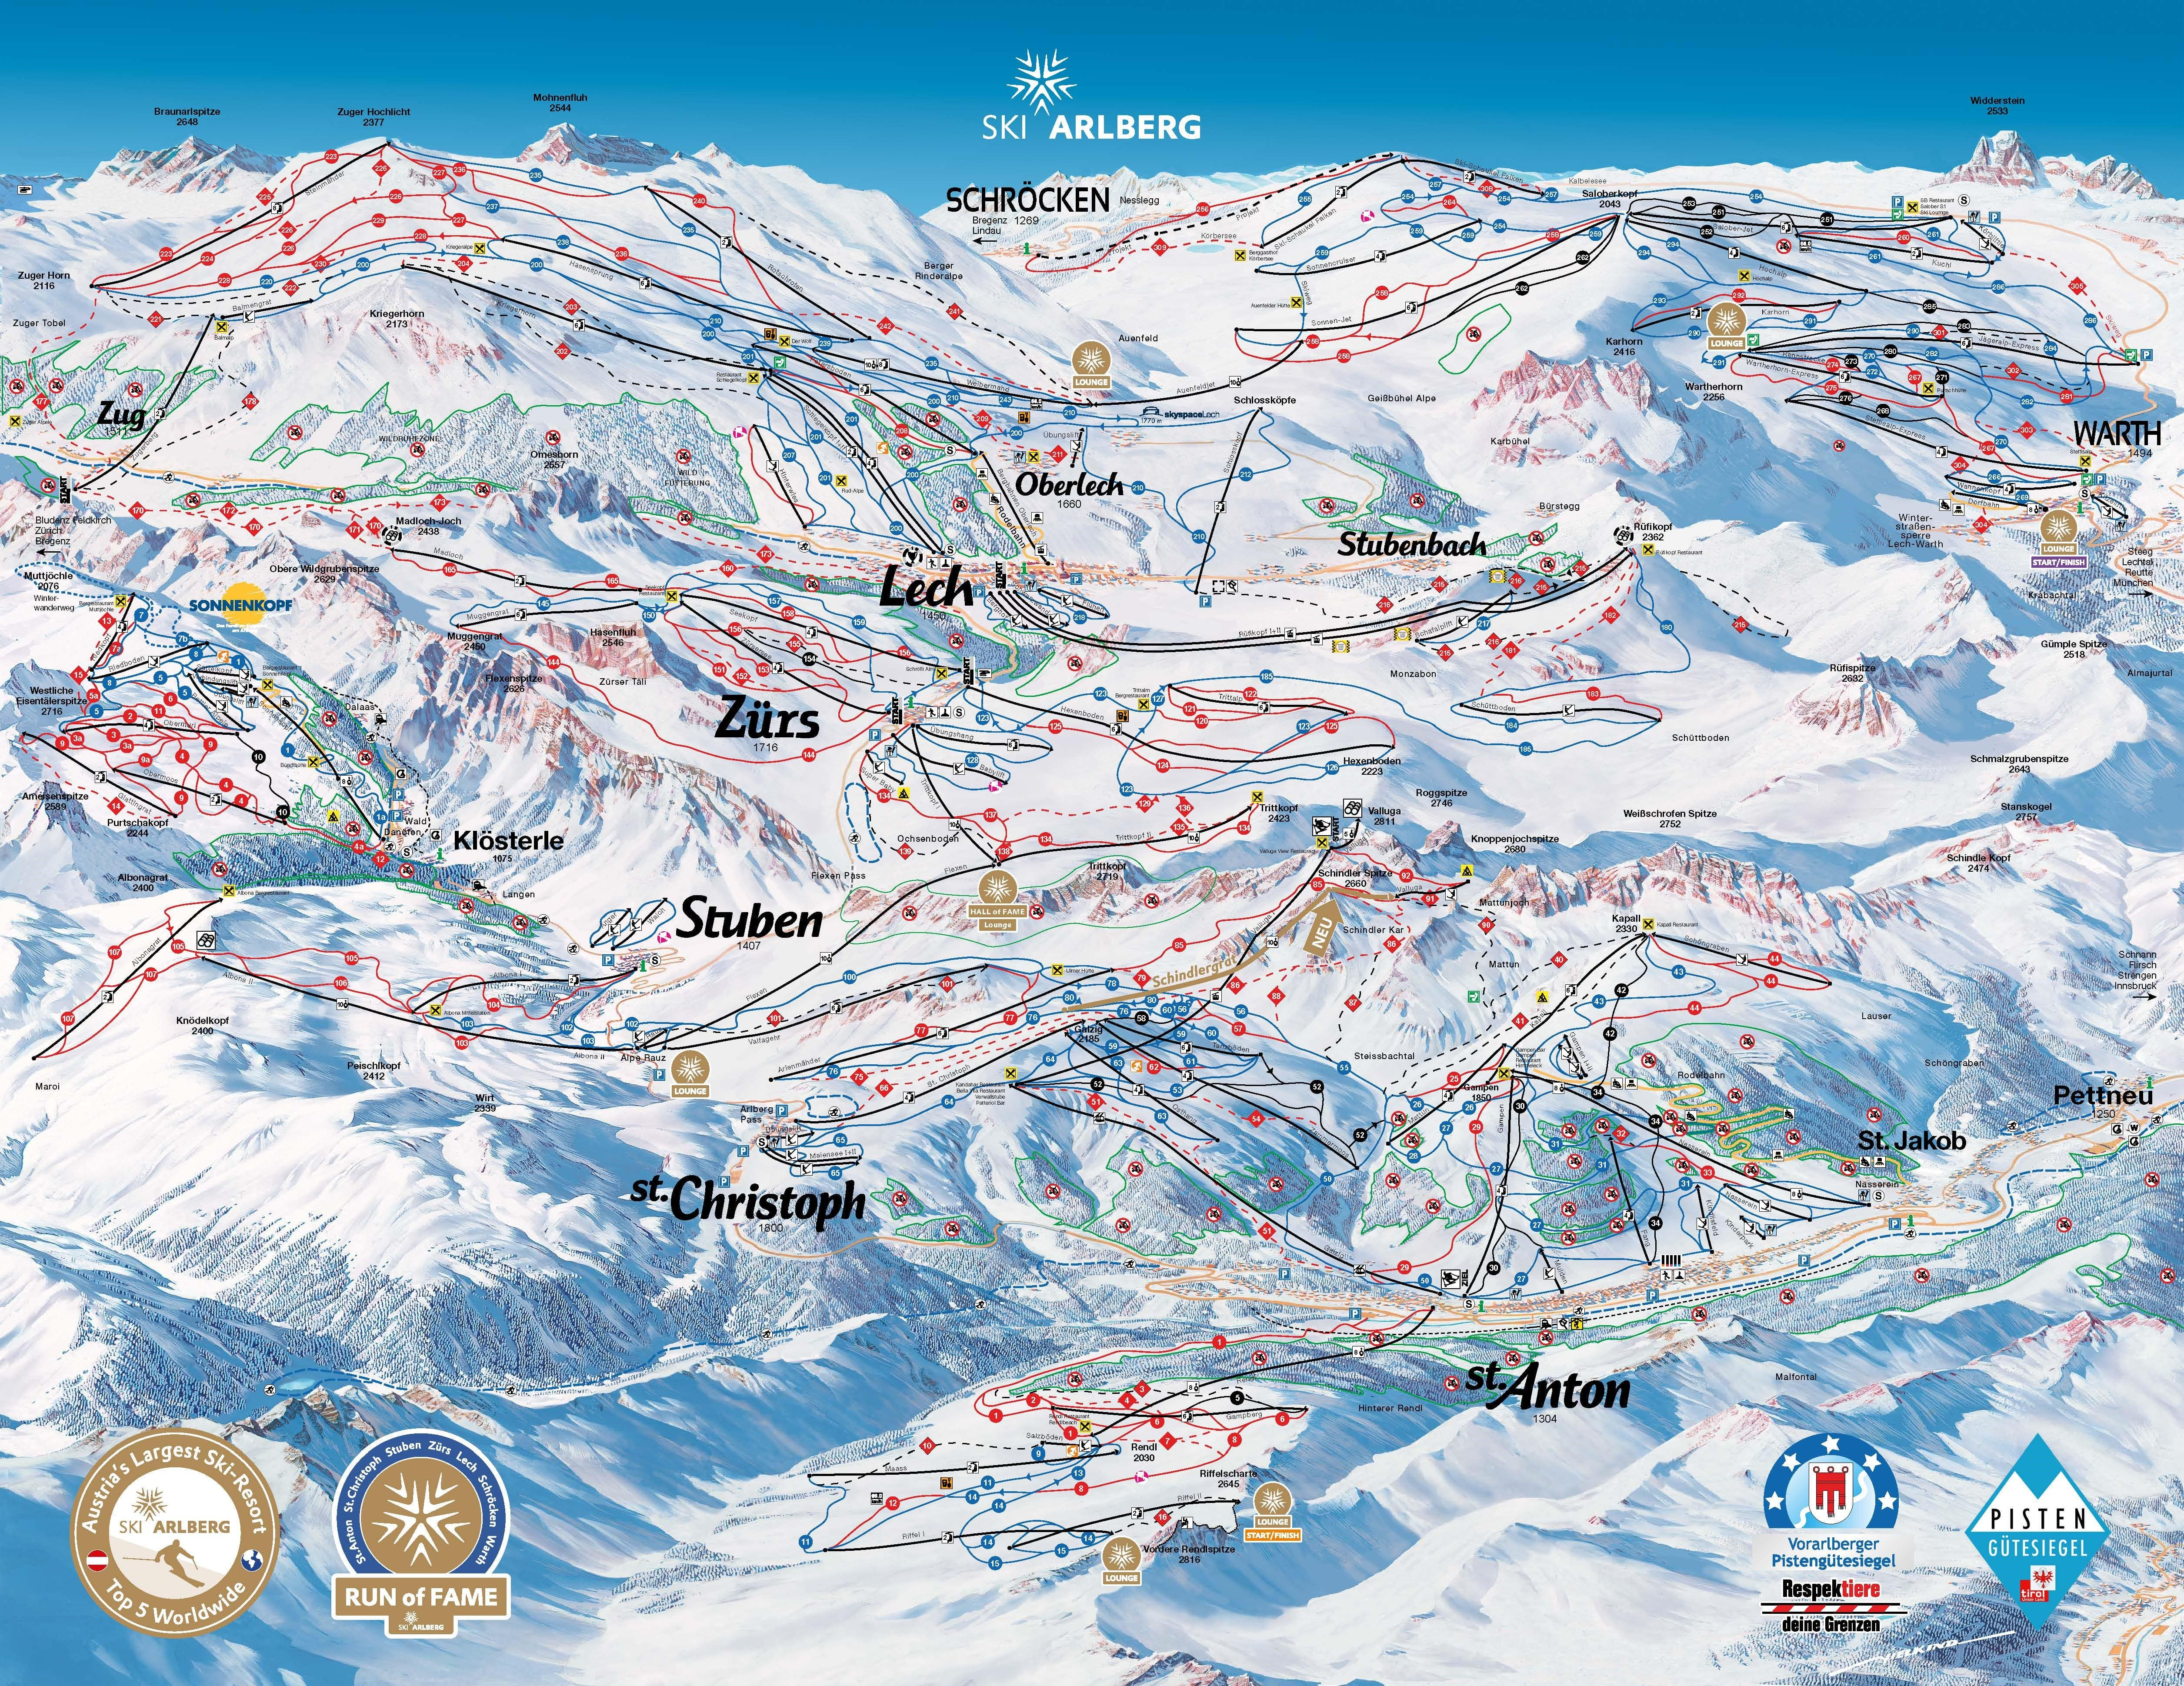 Lech Piste / Trail Map